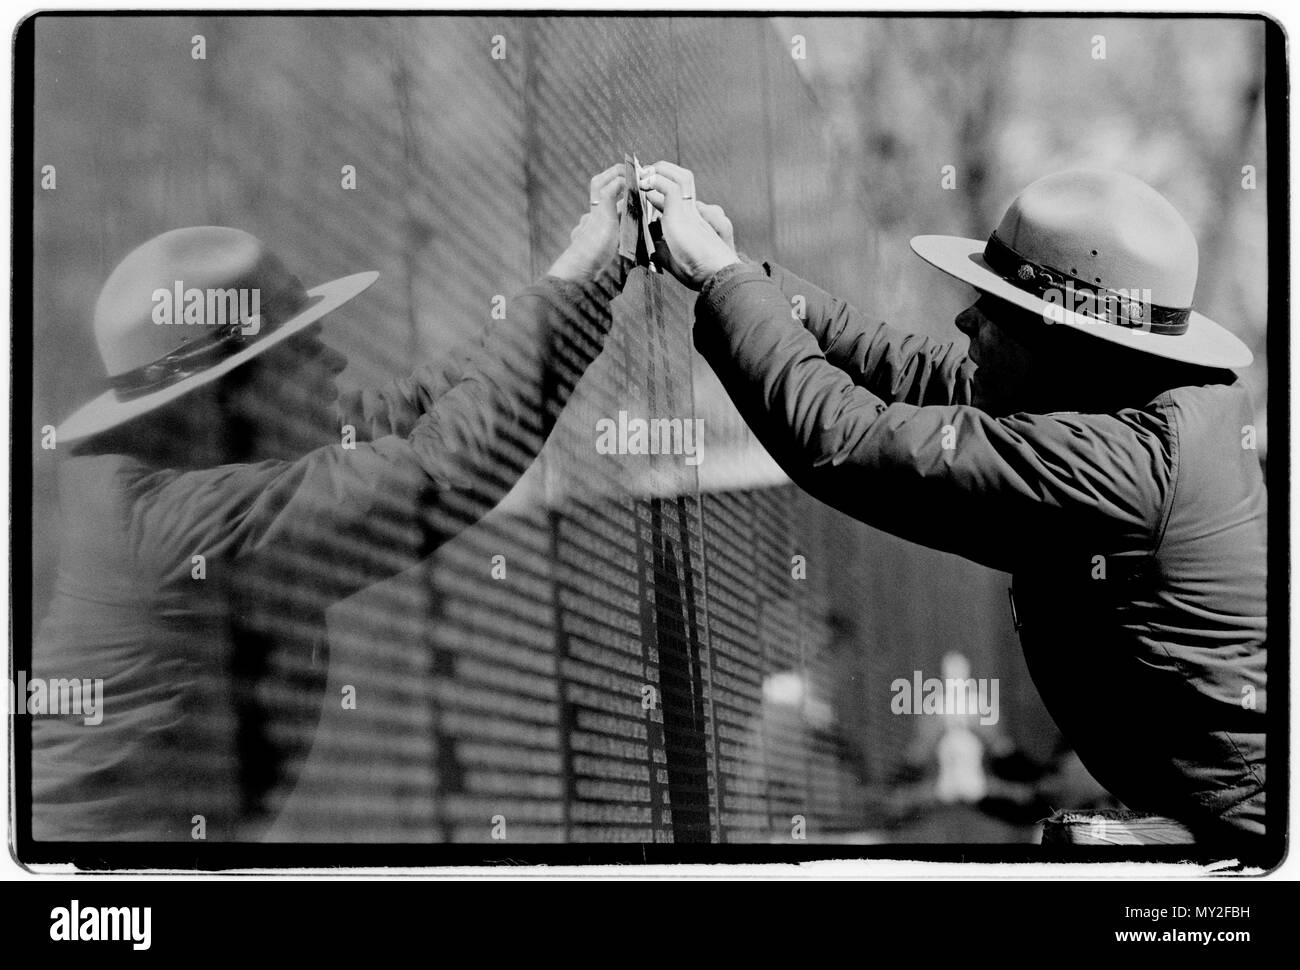 The Vietnam Veterans Memorial is a 2-acre (8,000 m²) U.S. national memorial in Washington D.C. It honors service members of the U.S. armed forces who fought in the Vietnam War, service members who died in service in Vietnam/South East Asia, and those service members who were unaccounted for (missing in action, MIA) during the war. - Stock Image